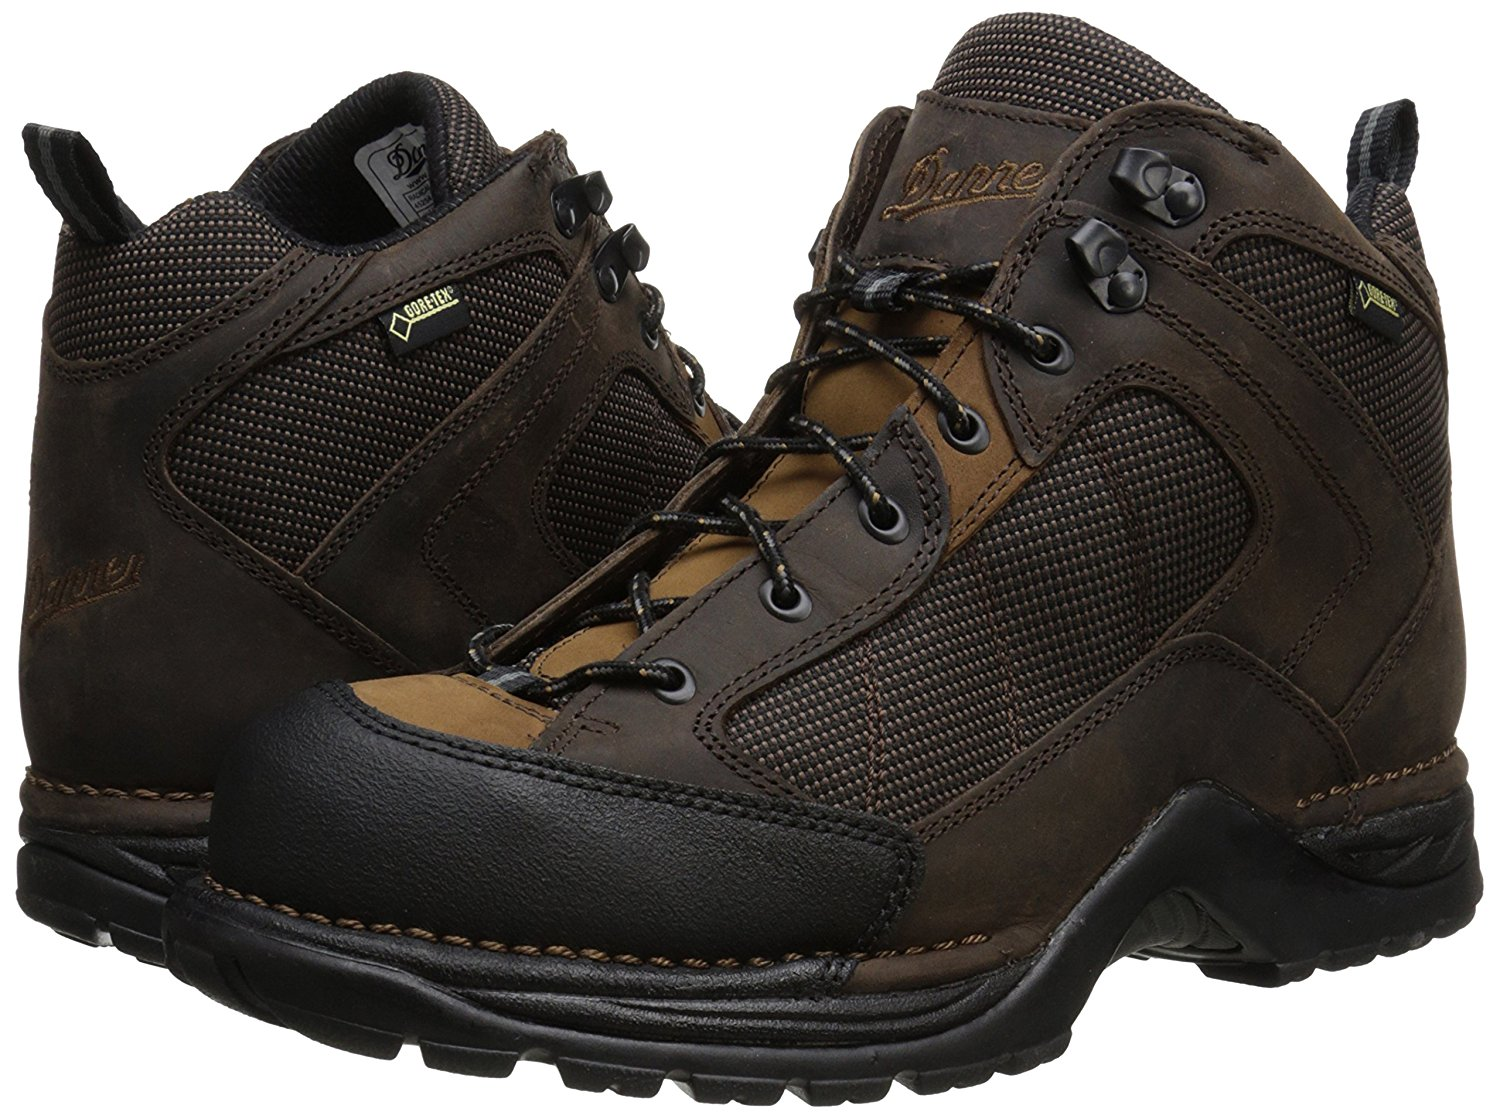 Radical 452 GTX Outdoor Hiking Boot